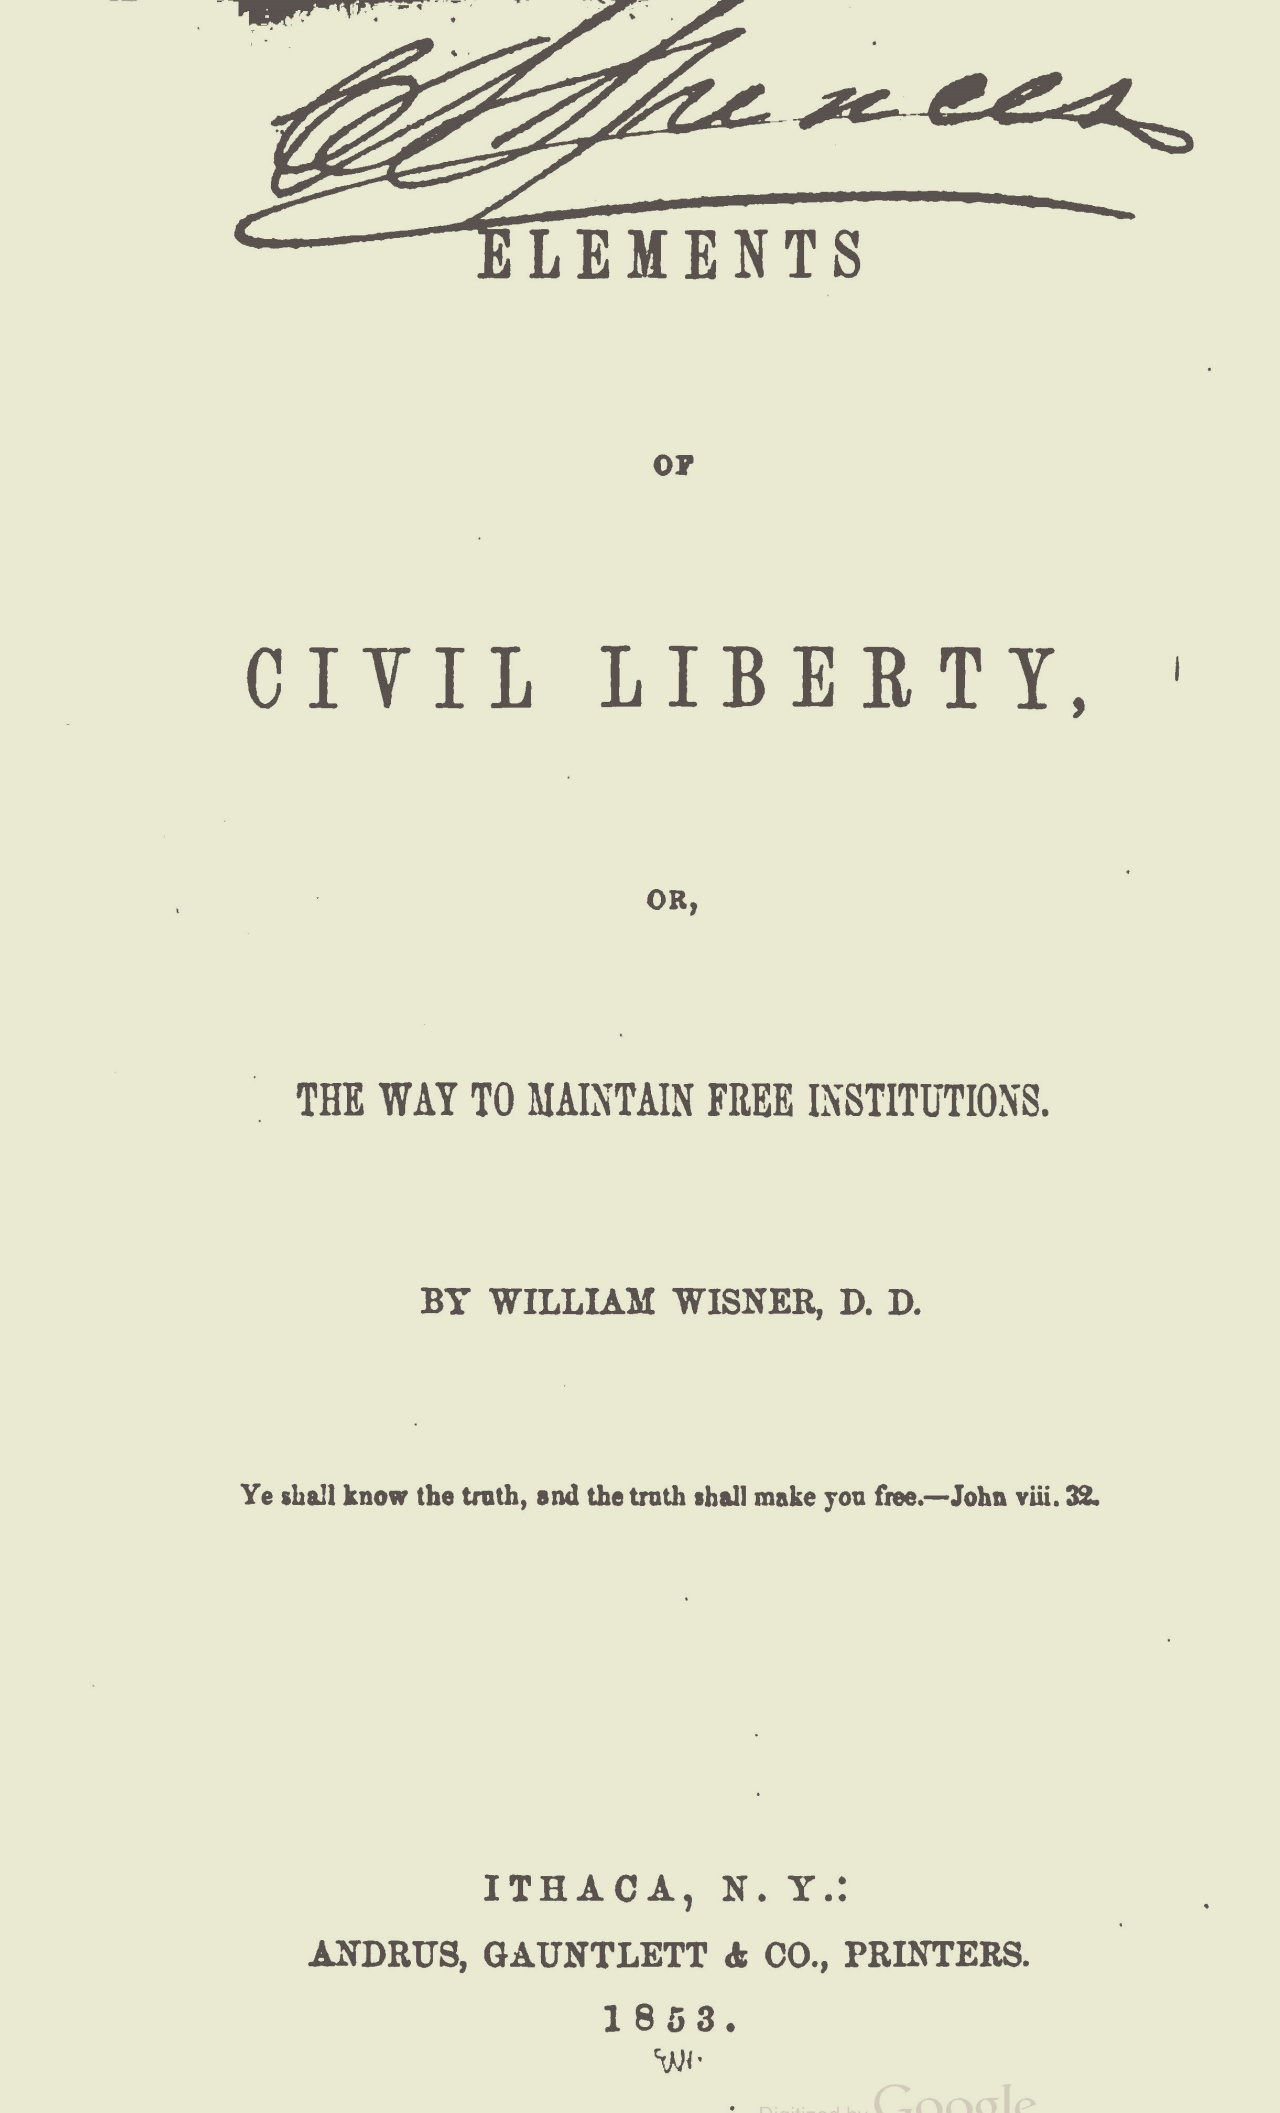 Wisner, William, Elements of Civil Liberty Title Page.jpg